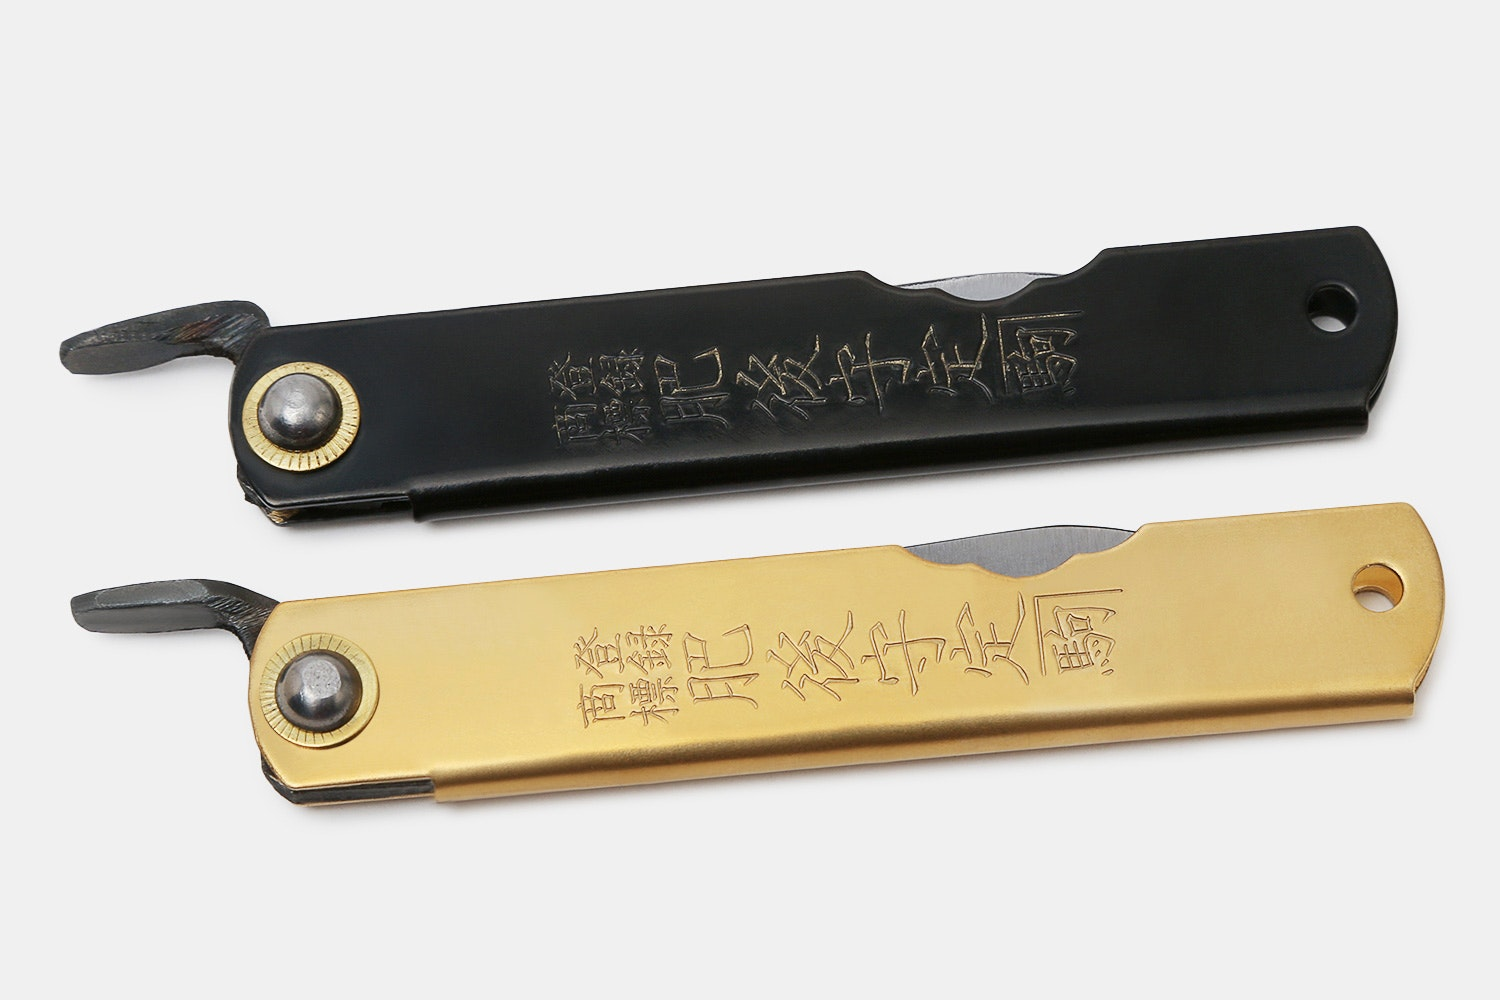 Nagao Higonokami Friction Folder